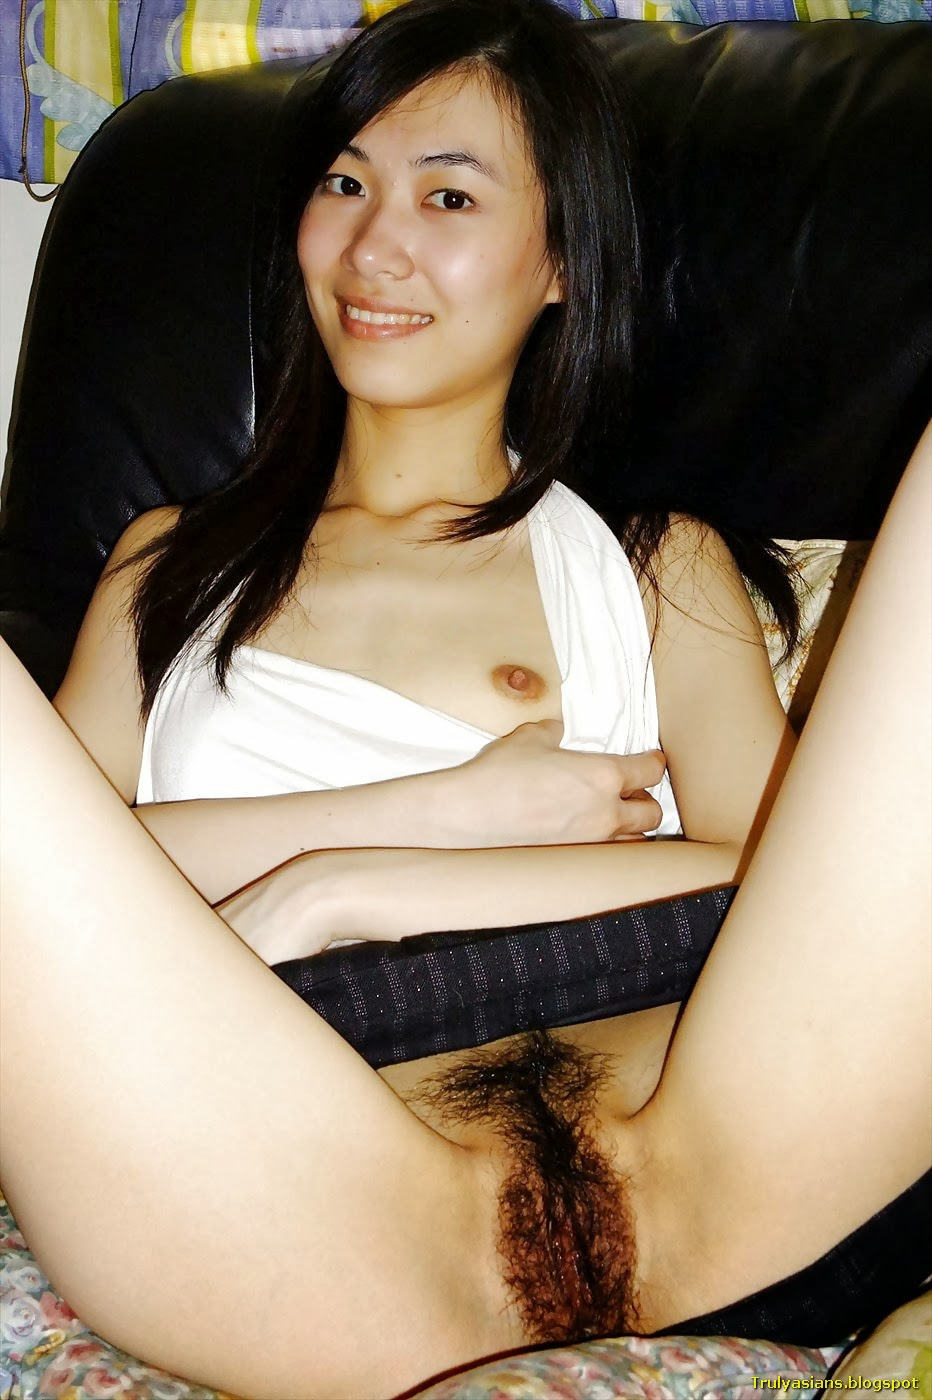 Beautiful Hong Kong girlfriend's dirty sex photos leaked (116pix)